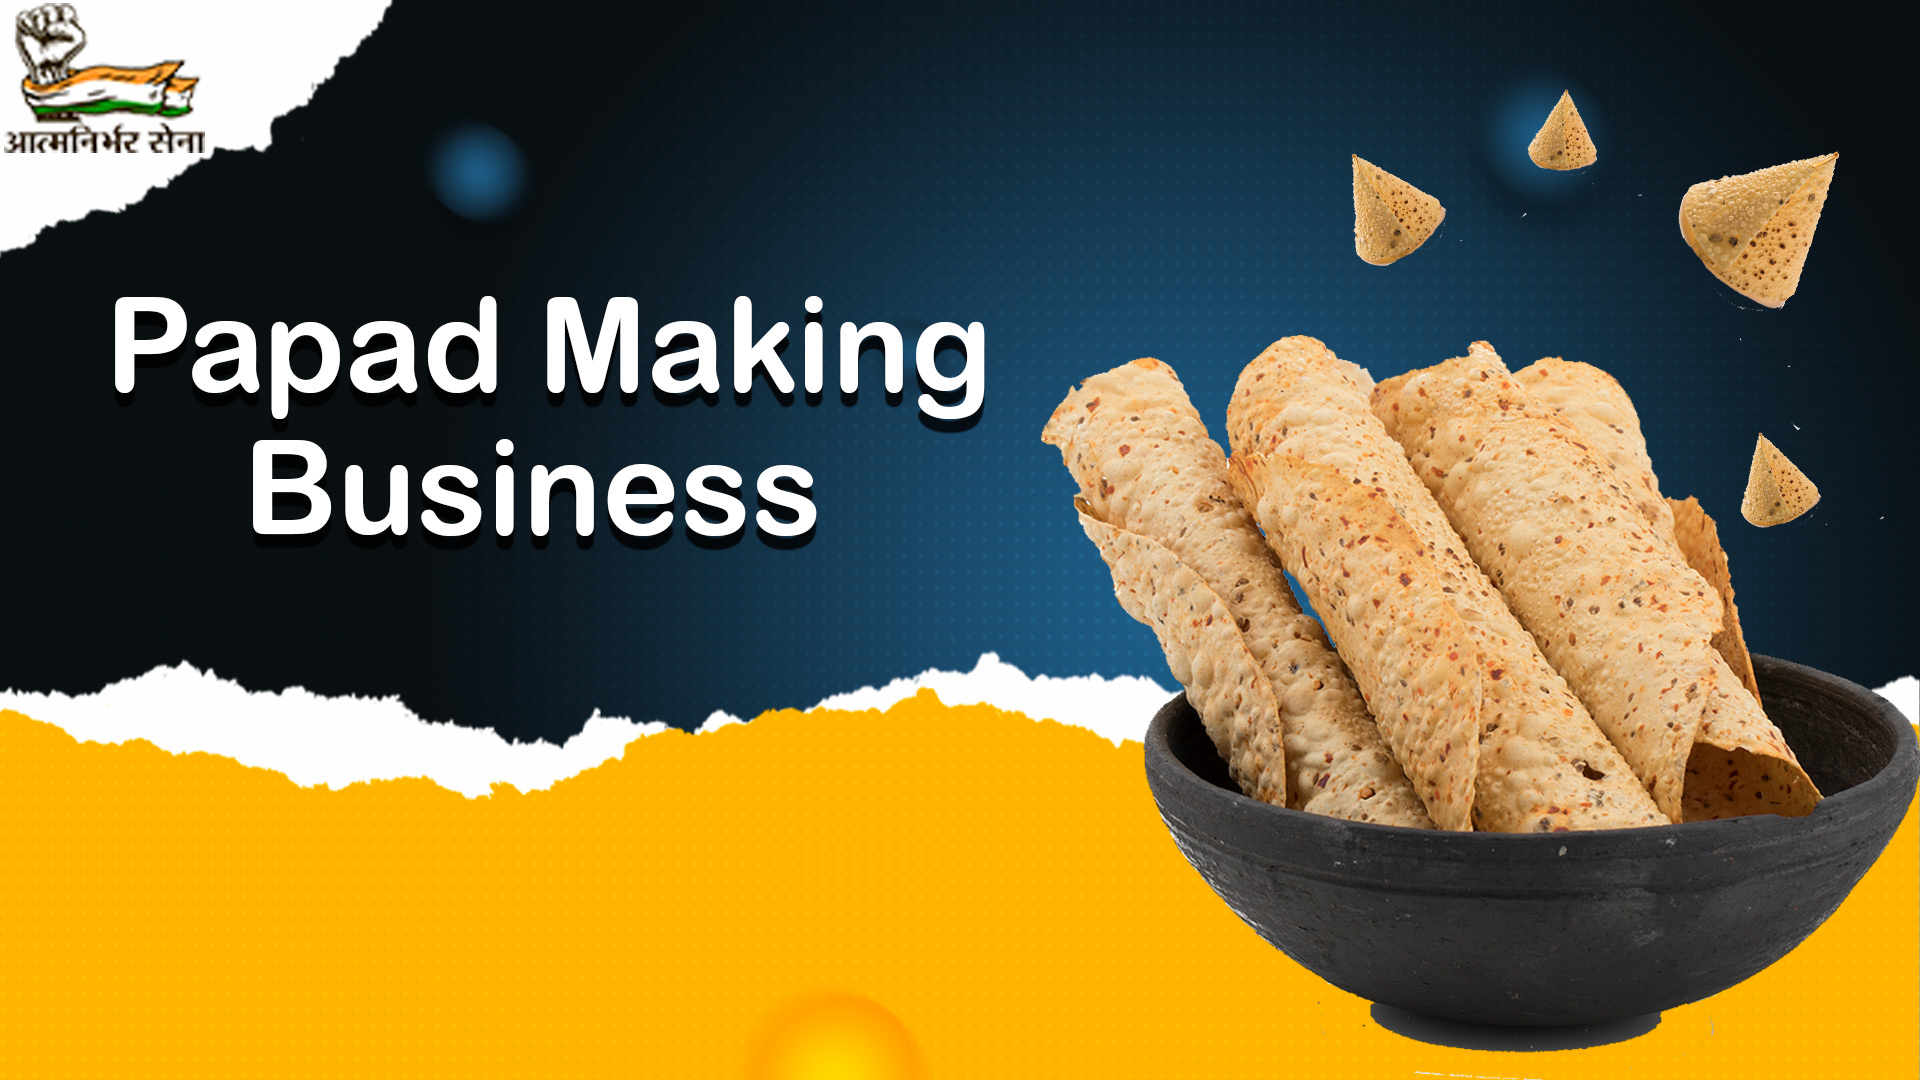 Everything you should know about Papad Making Business in India